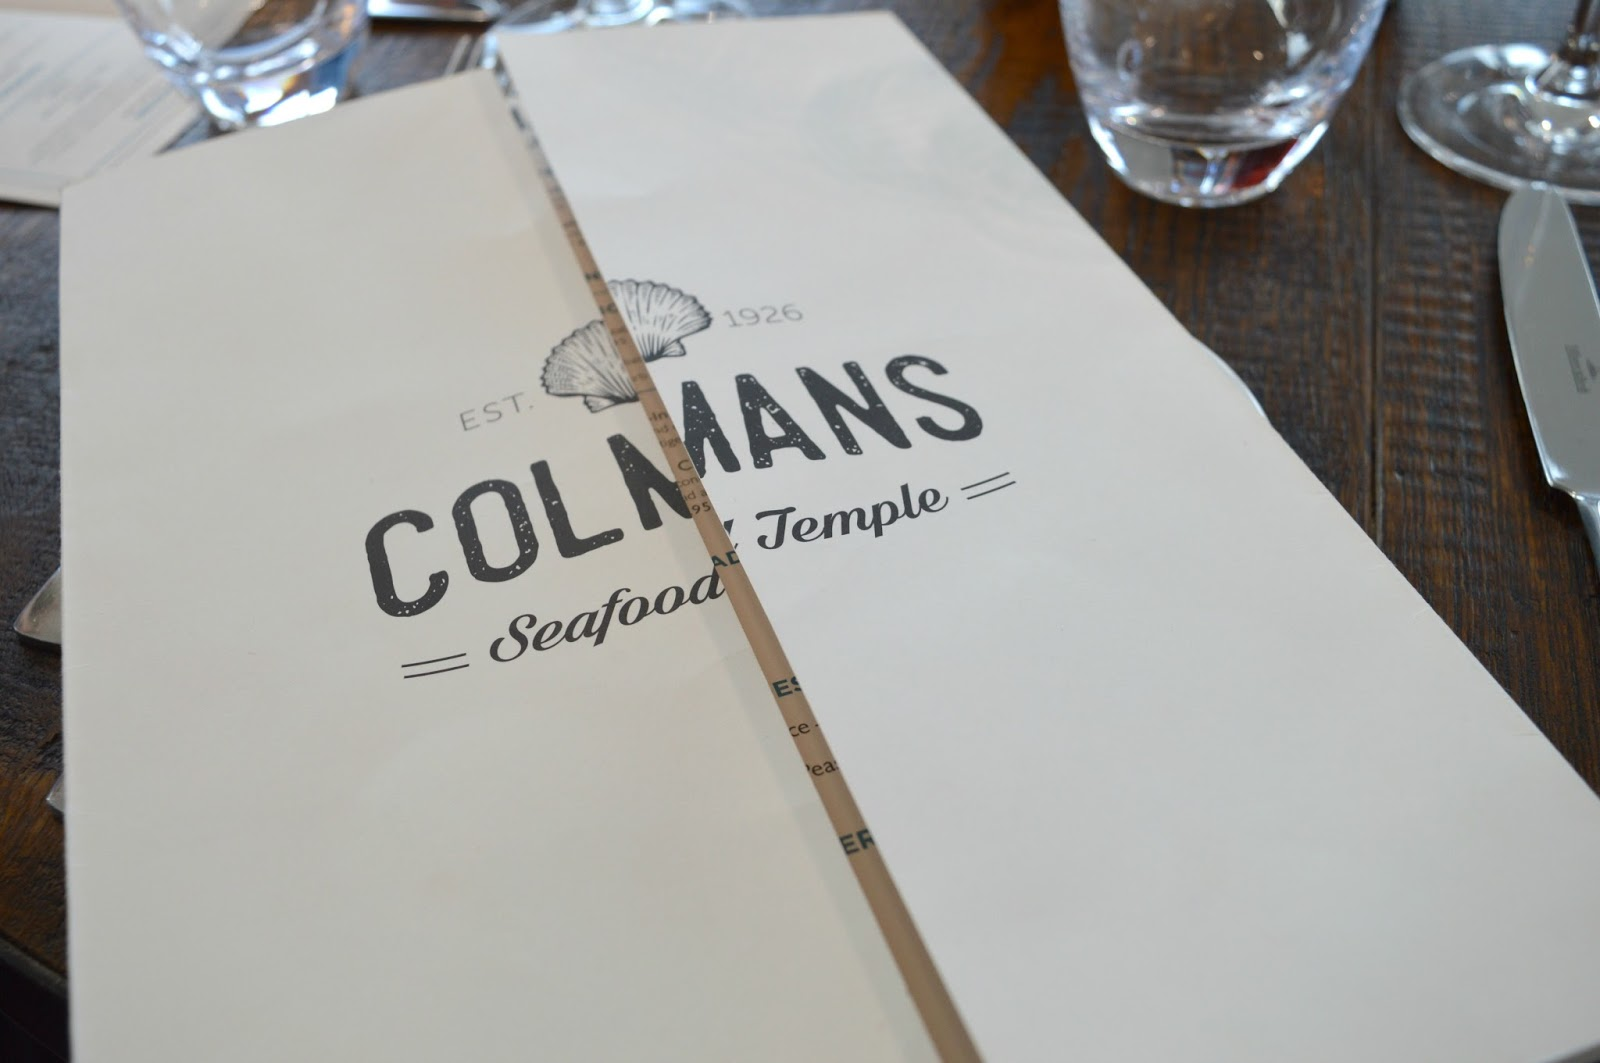 Colmans Seafood Temple, South Shields - Menu